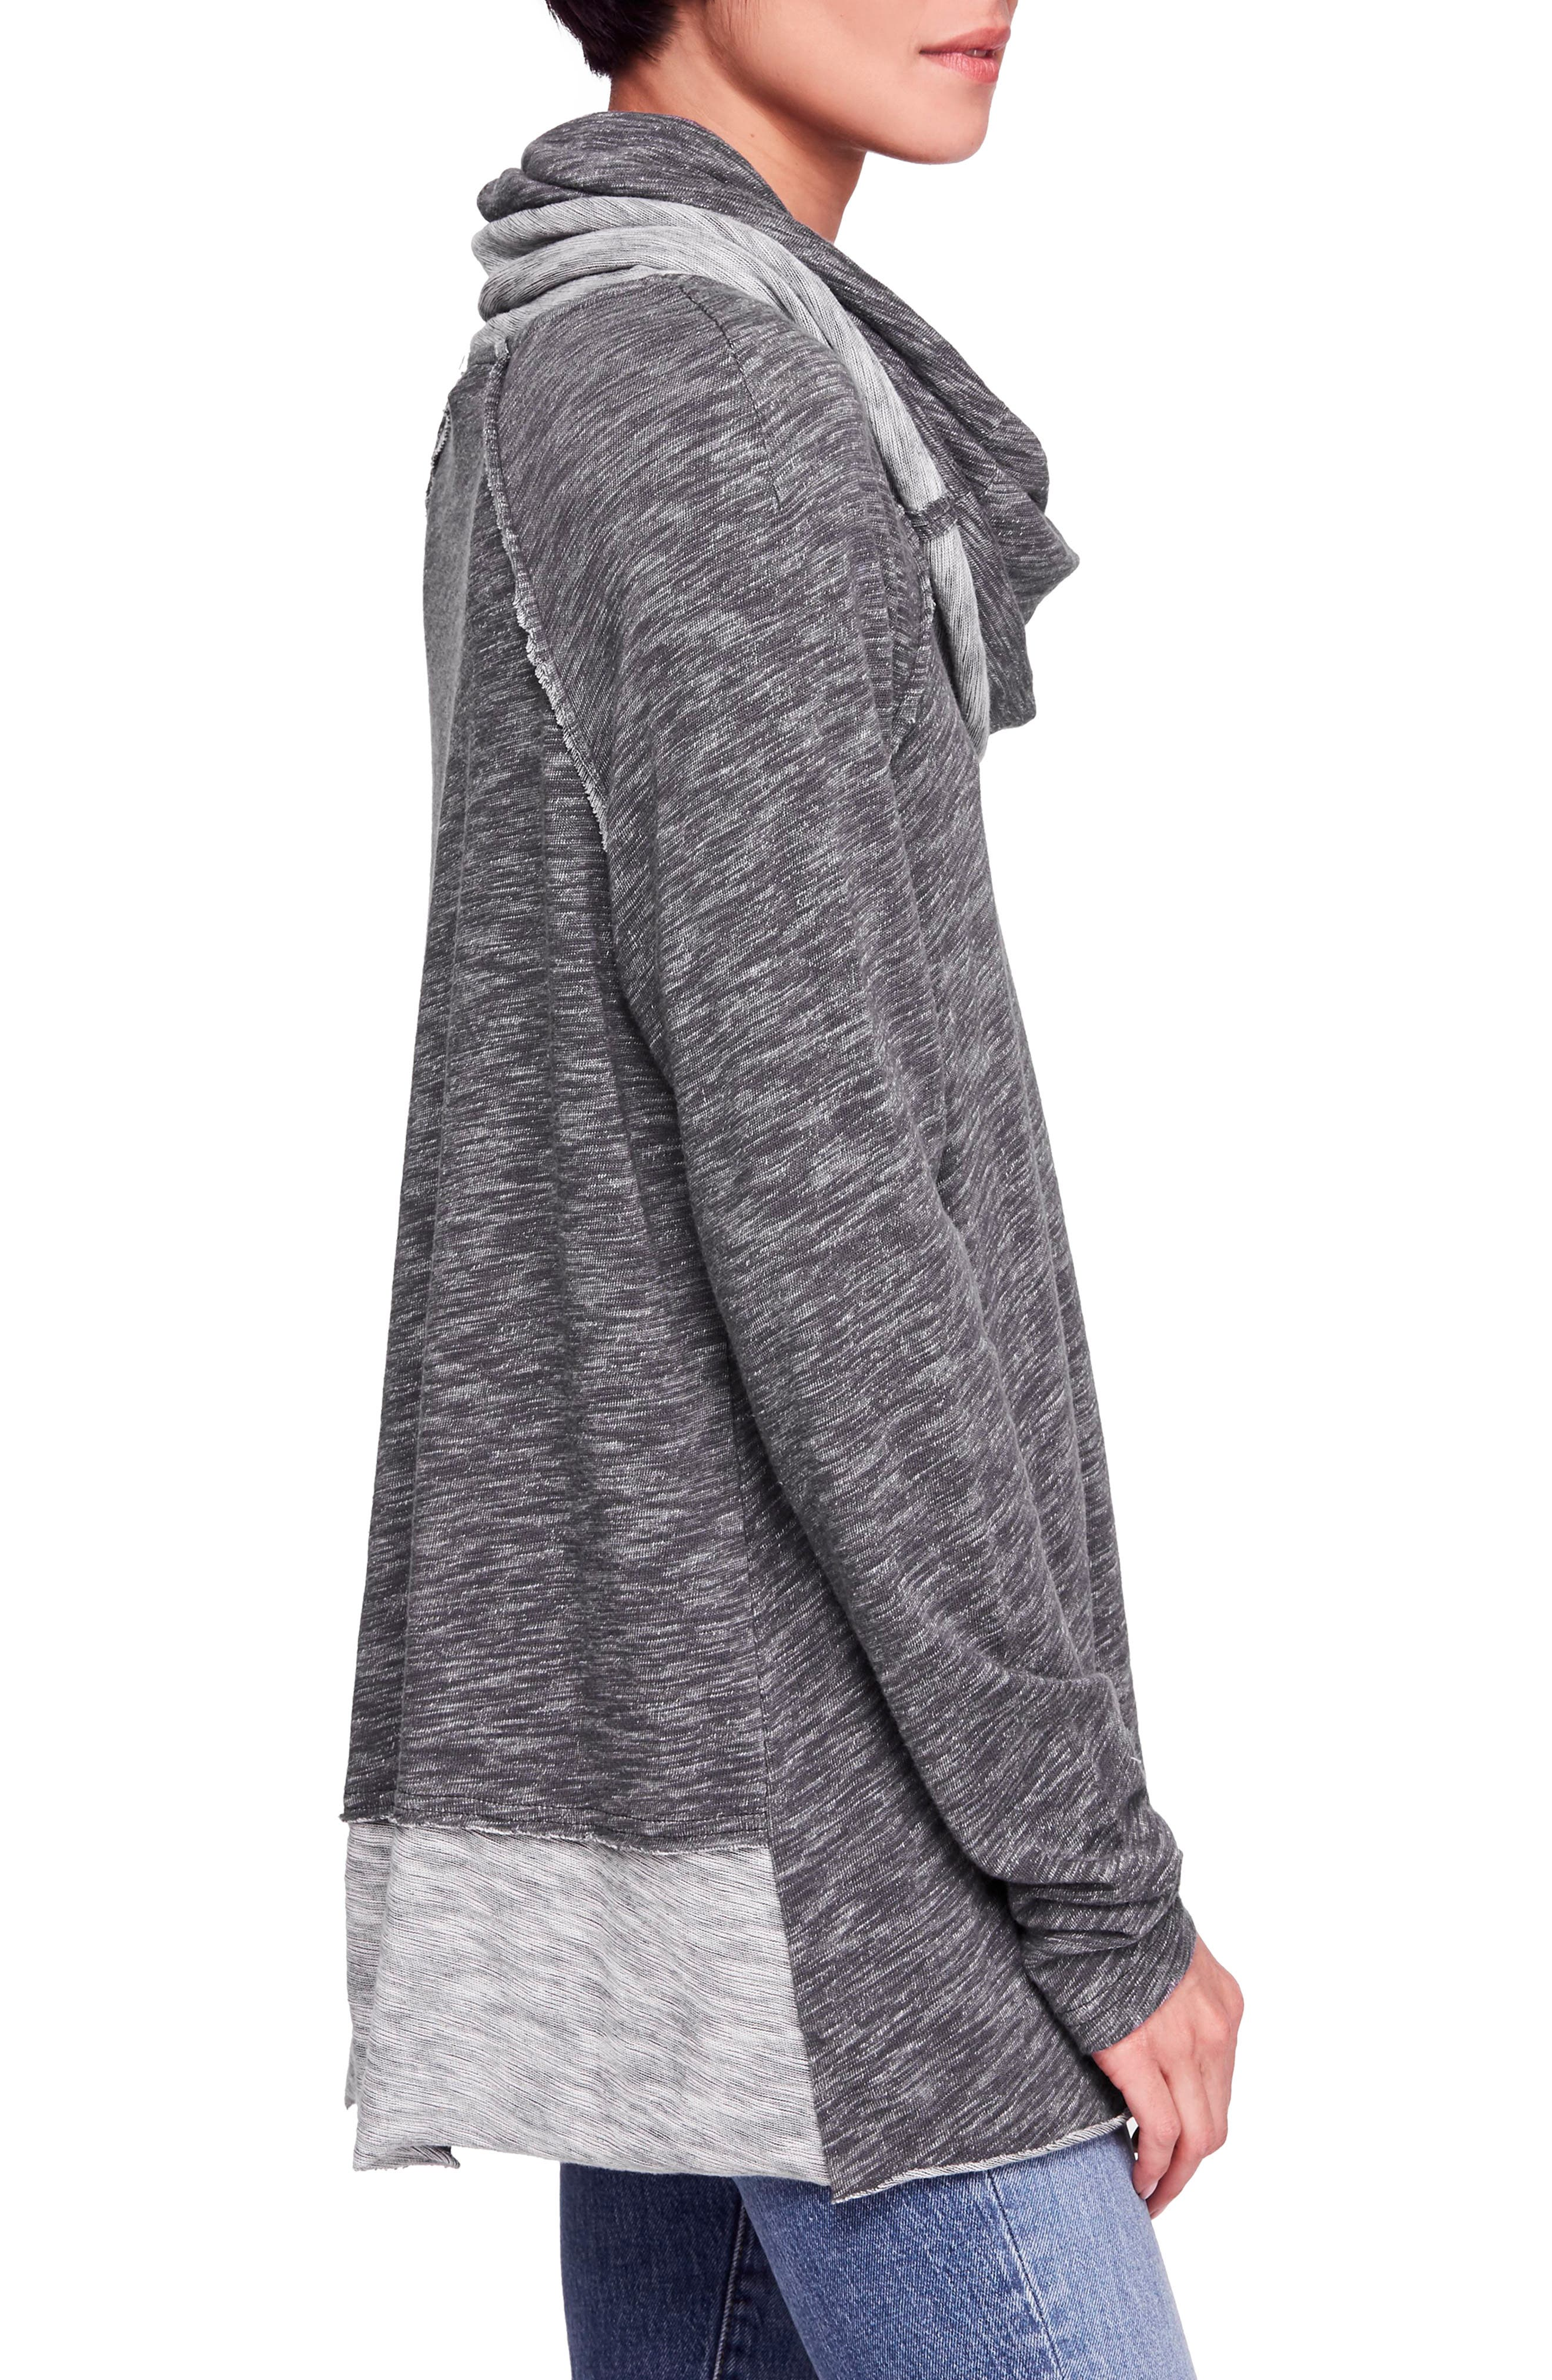 Cocoon Cowl Neck Top,                             Alternate thumbnail 3, color,                             CHARCOAL